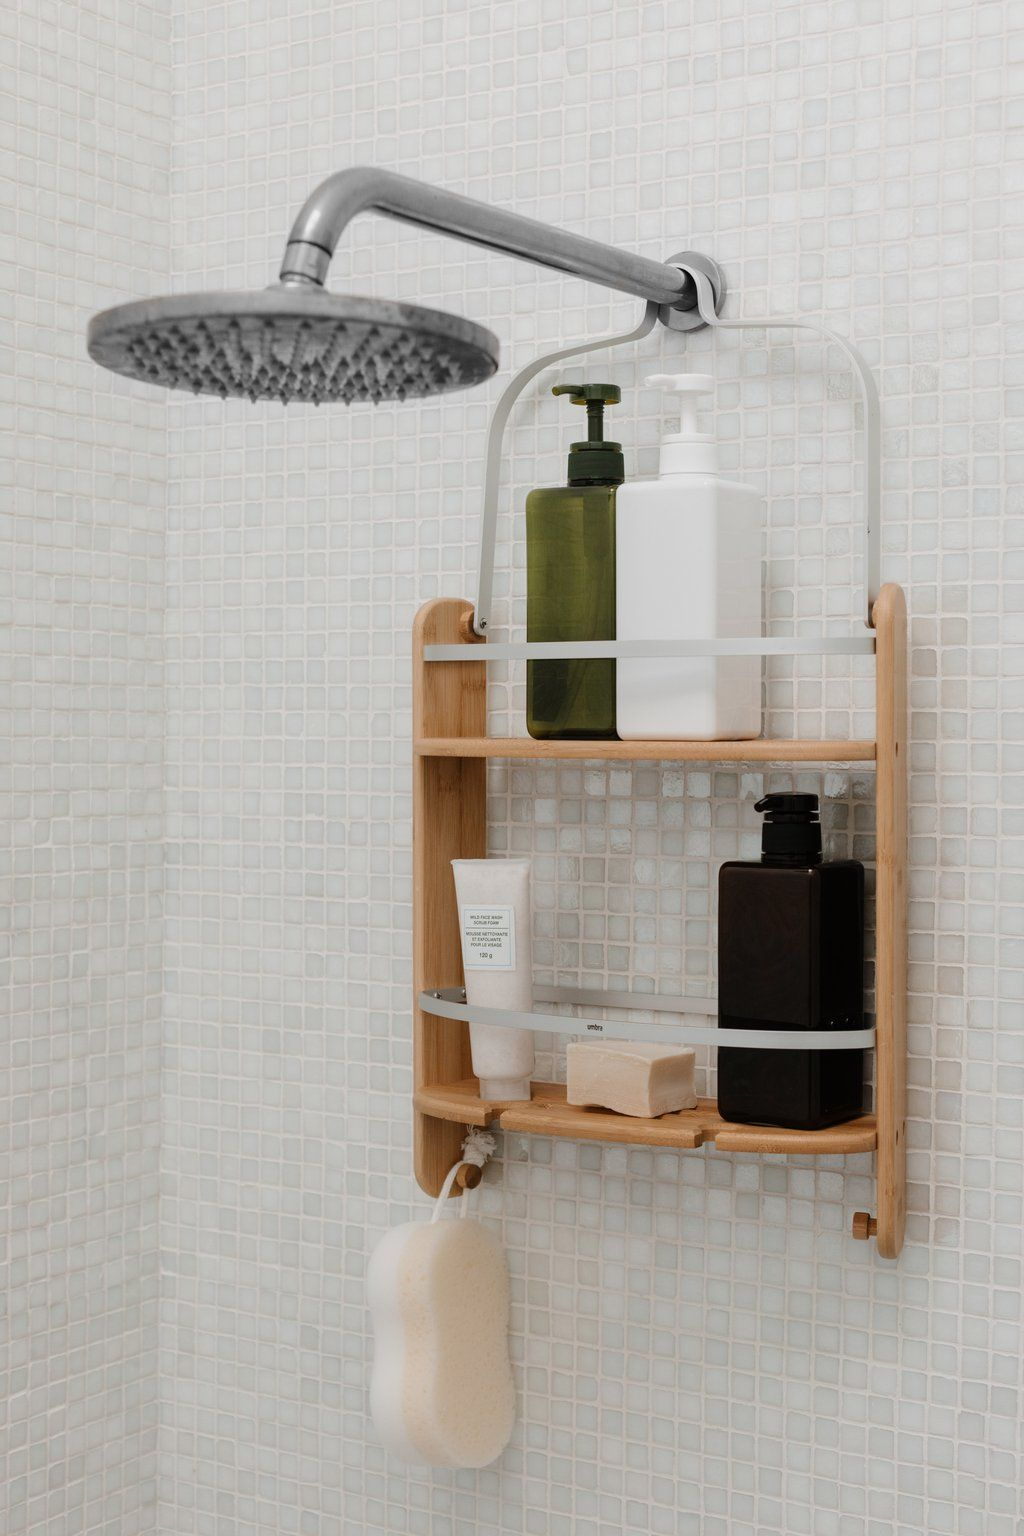 Photo of Rub a Dub Dub: 7 Clever Shower Organizer Ideas to Add to Your Bathroom Stat | Hunker